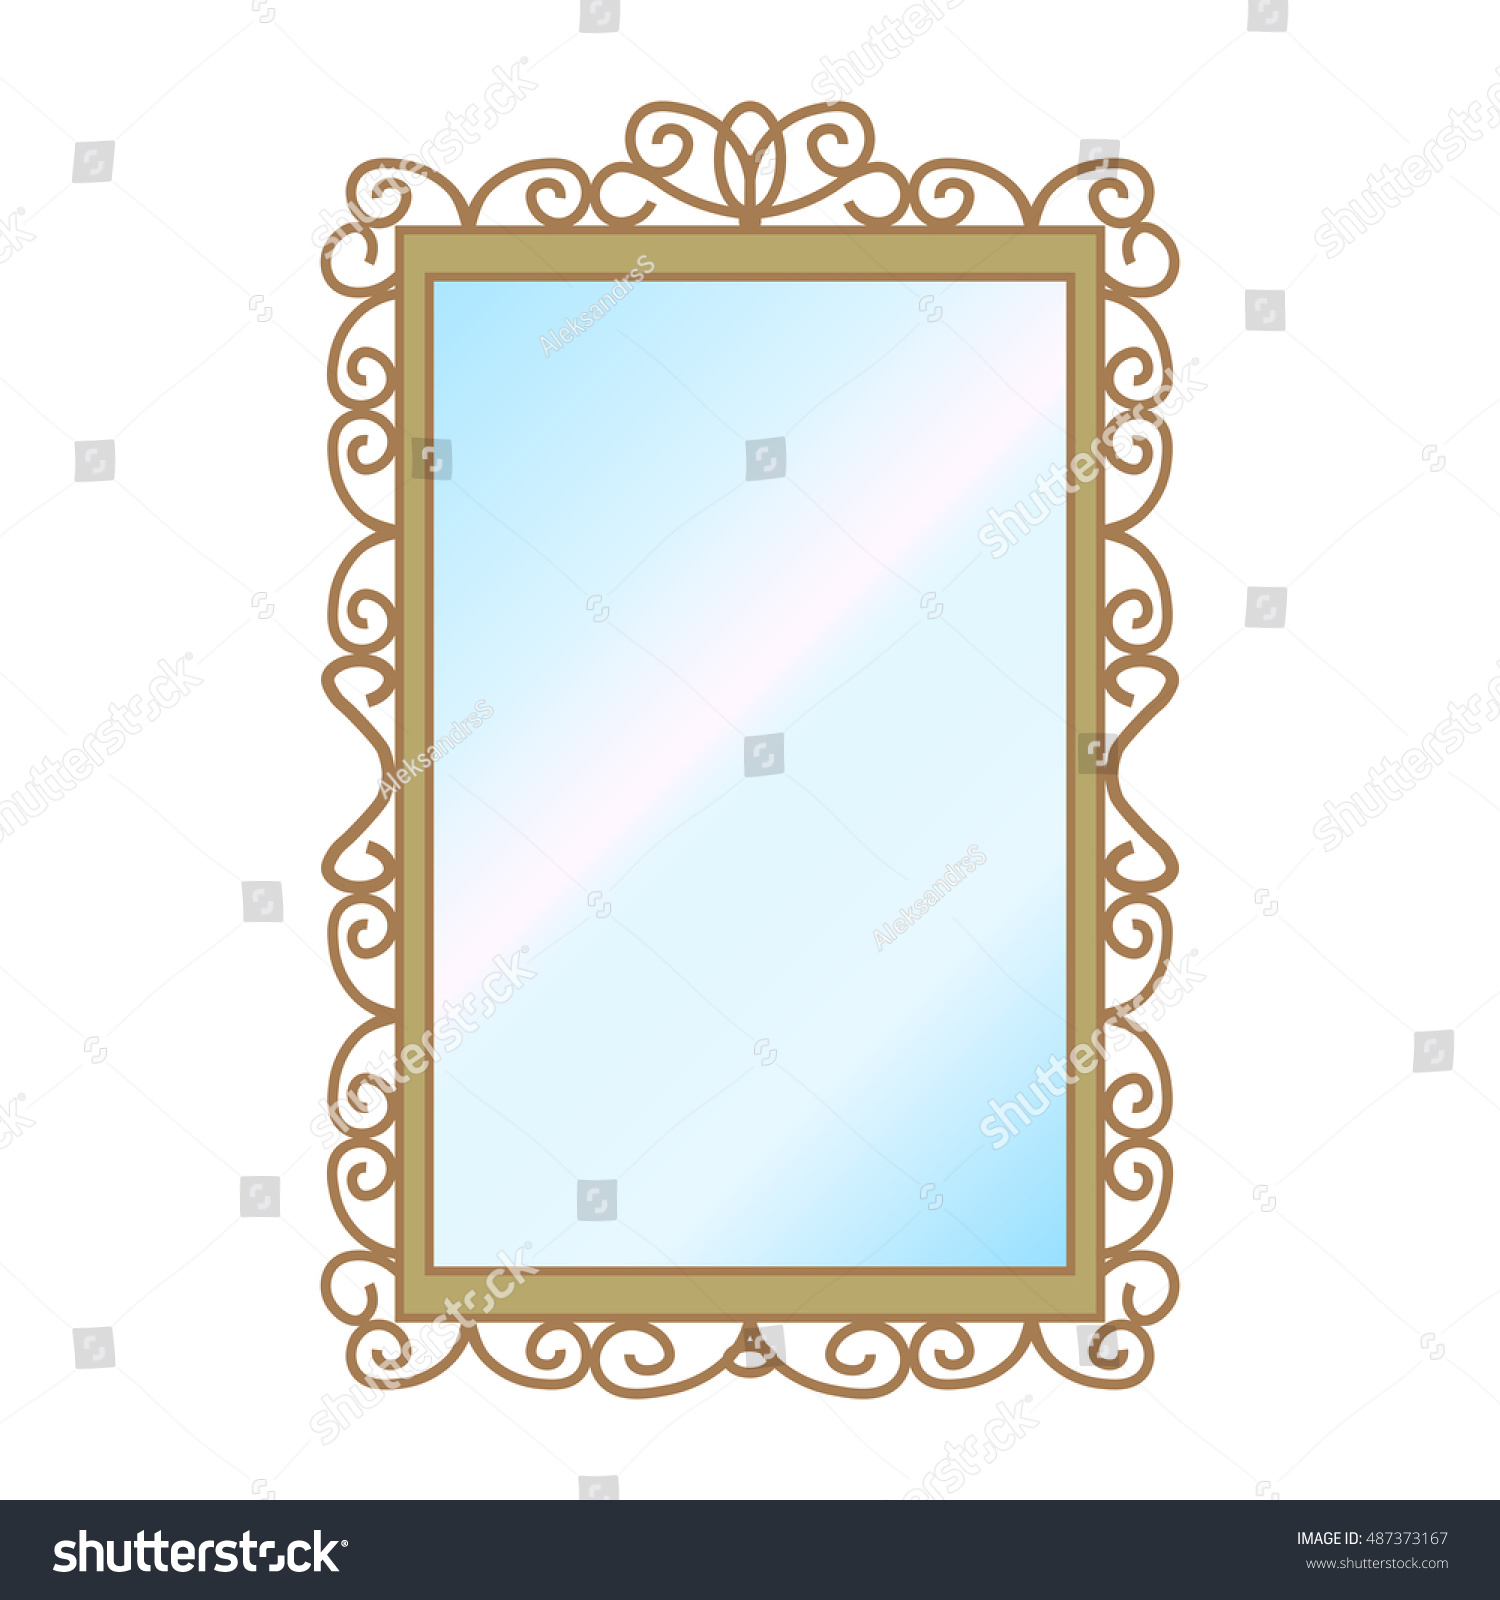 Vector illustration wall square mirror on stock vector 487373167 vector illustration of a wall square mirror on a white background amipublicfo Gallery